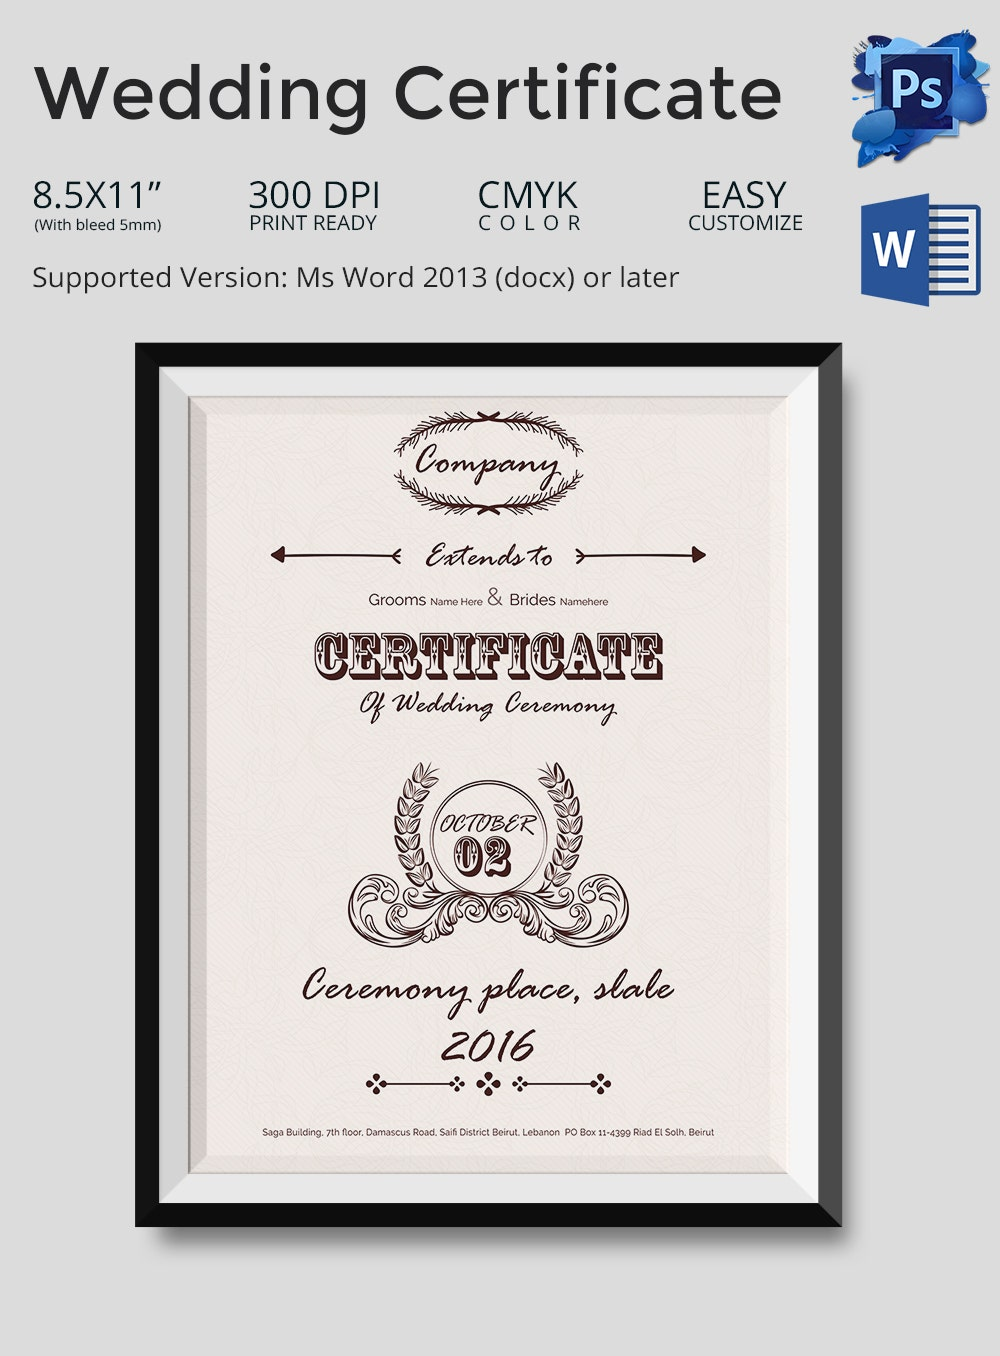 It is an image of Candid Marriage Certificate Template Word